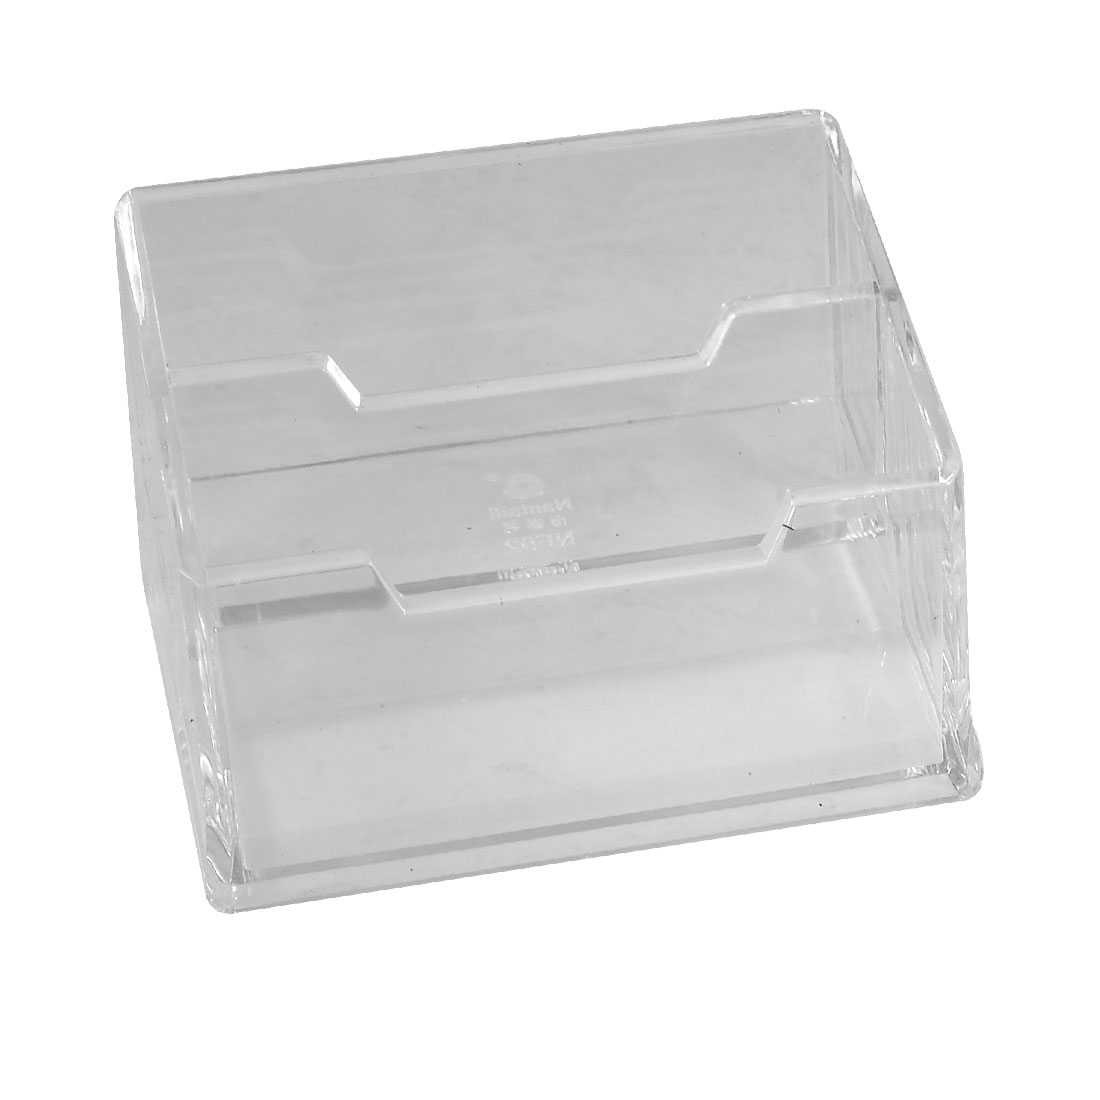 Office Plastic 2-layer Name Business ID Bank Card Stand Holder Case Box Clear